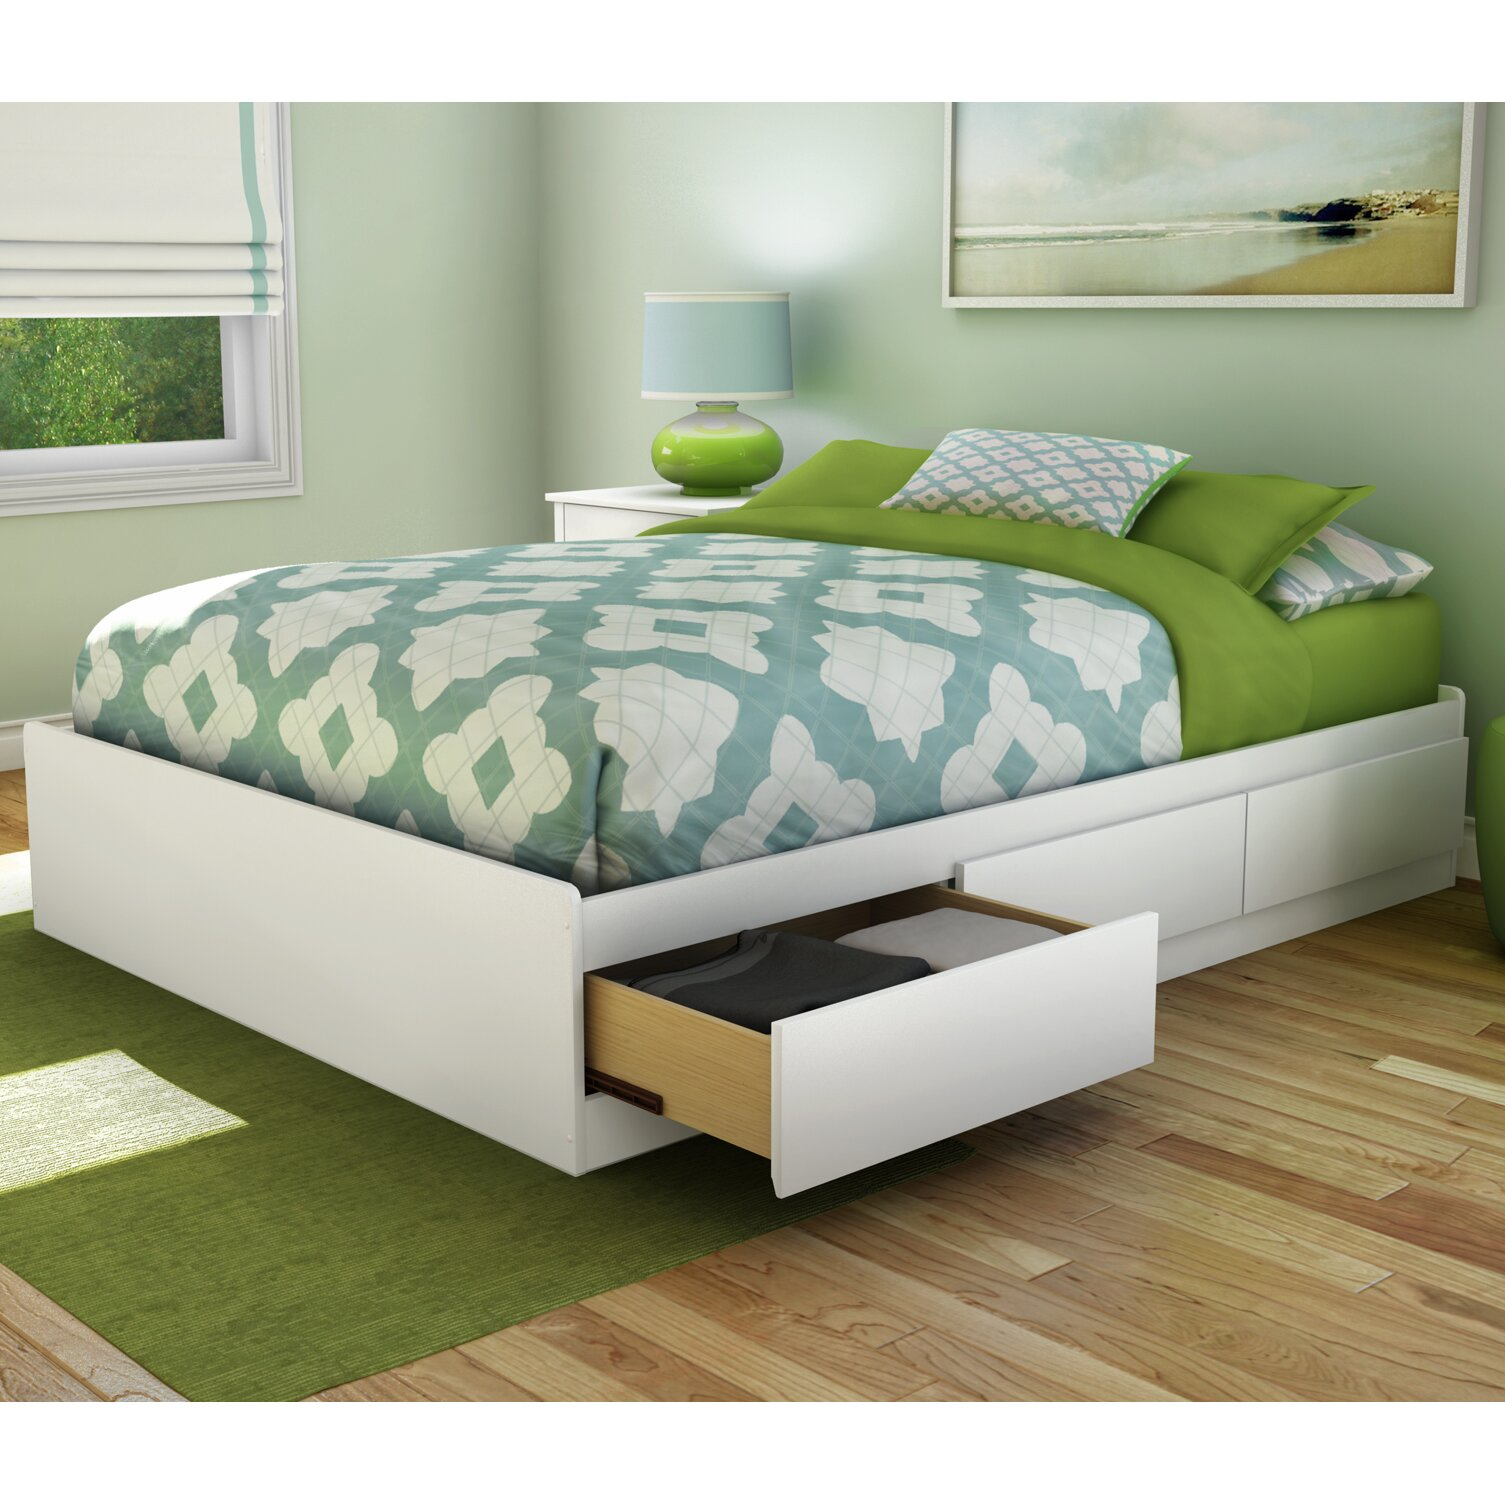 South shore step one full double storage platform bed for Double bed with storage and mattress